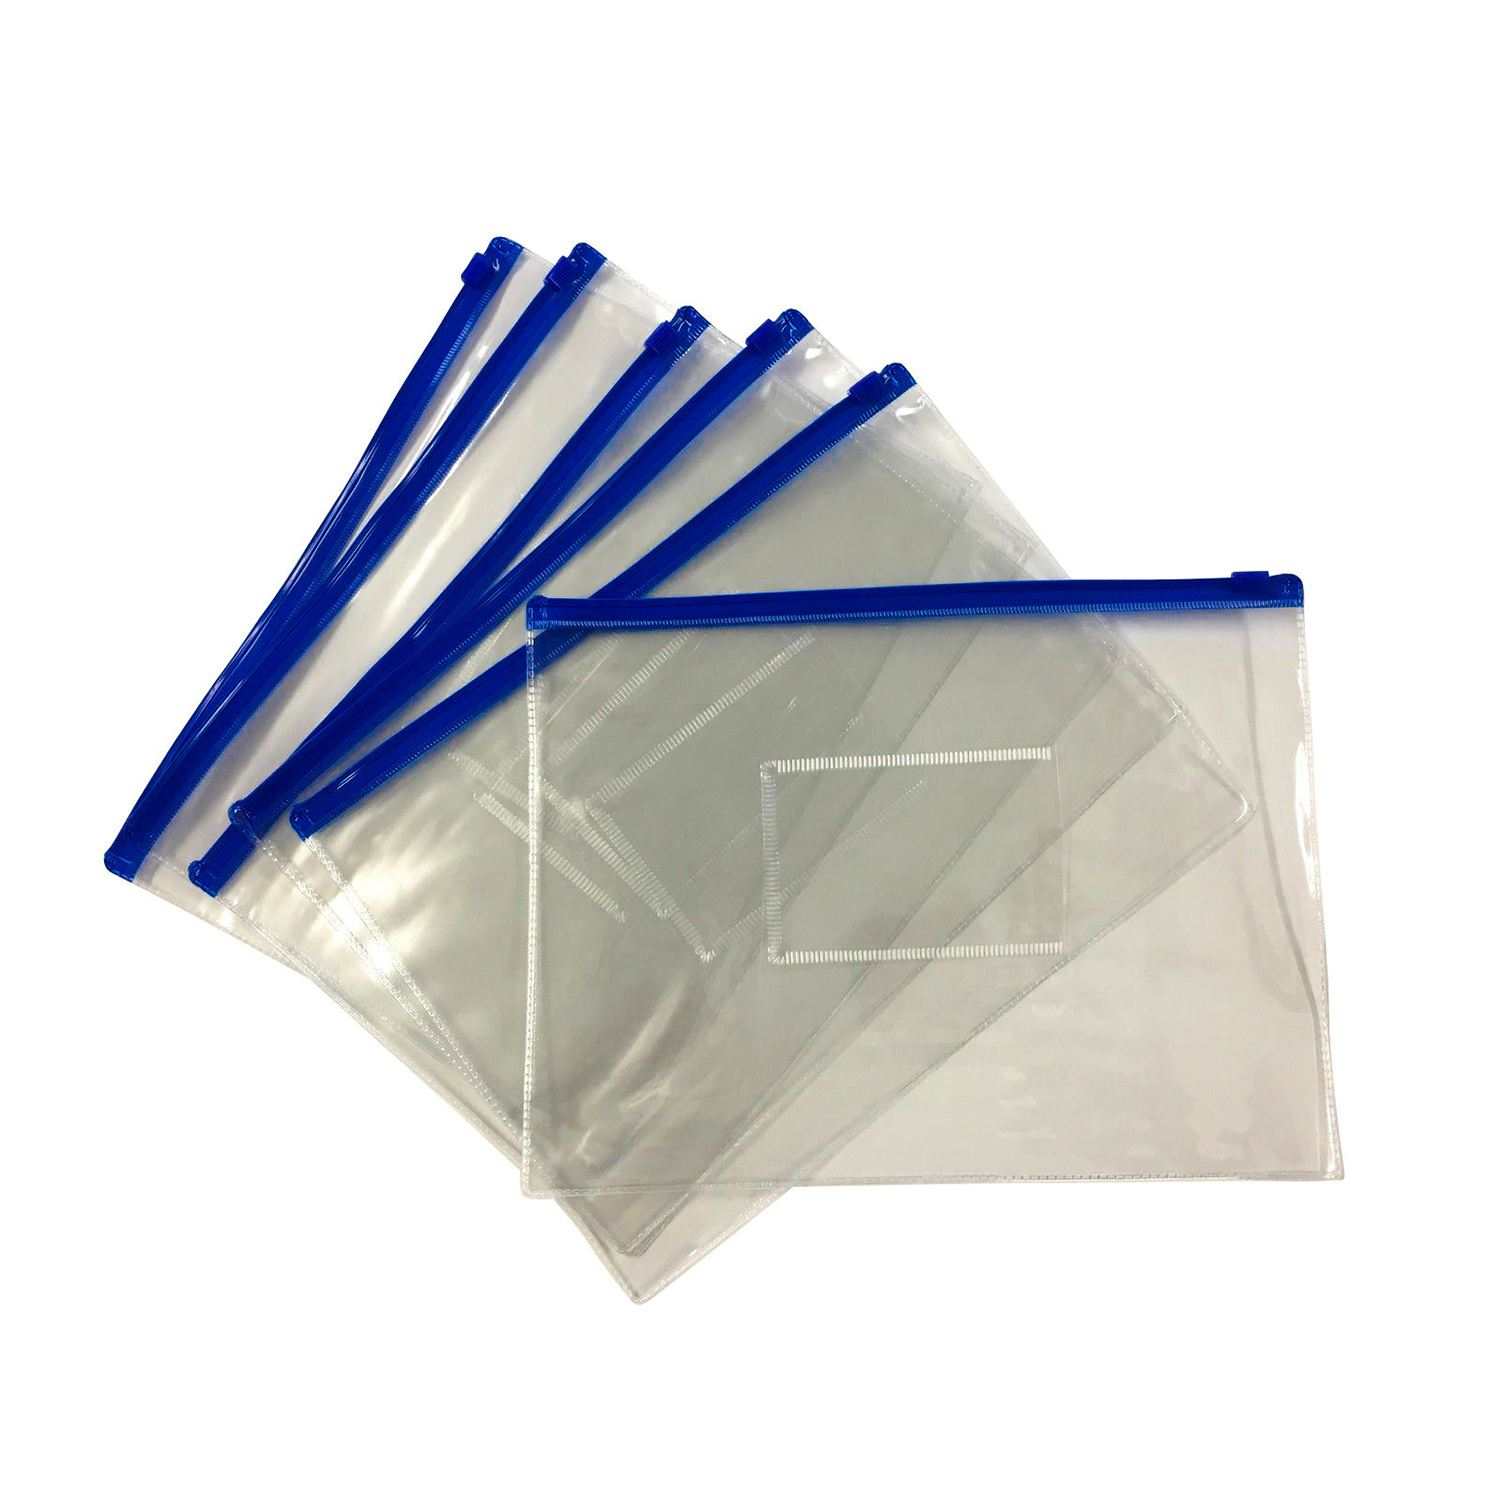 12 X A5 Blue Zip Zippy Bags -Document File Folder Clear Plastic Transparent Storage Bag